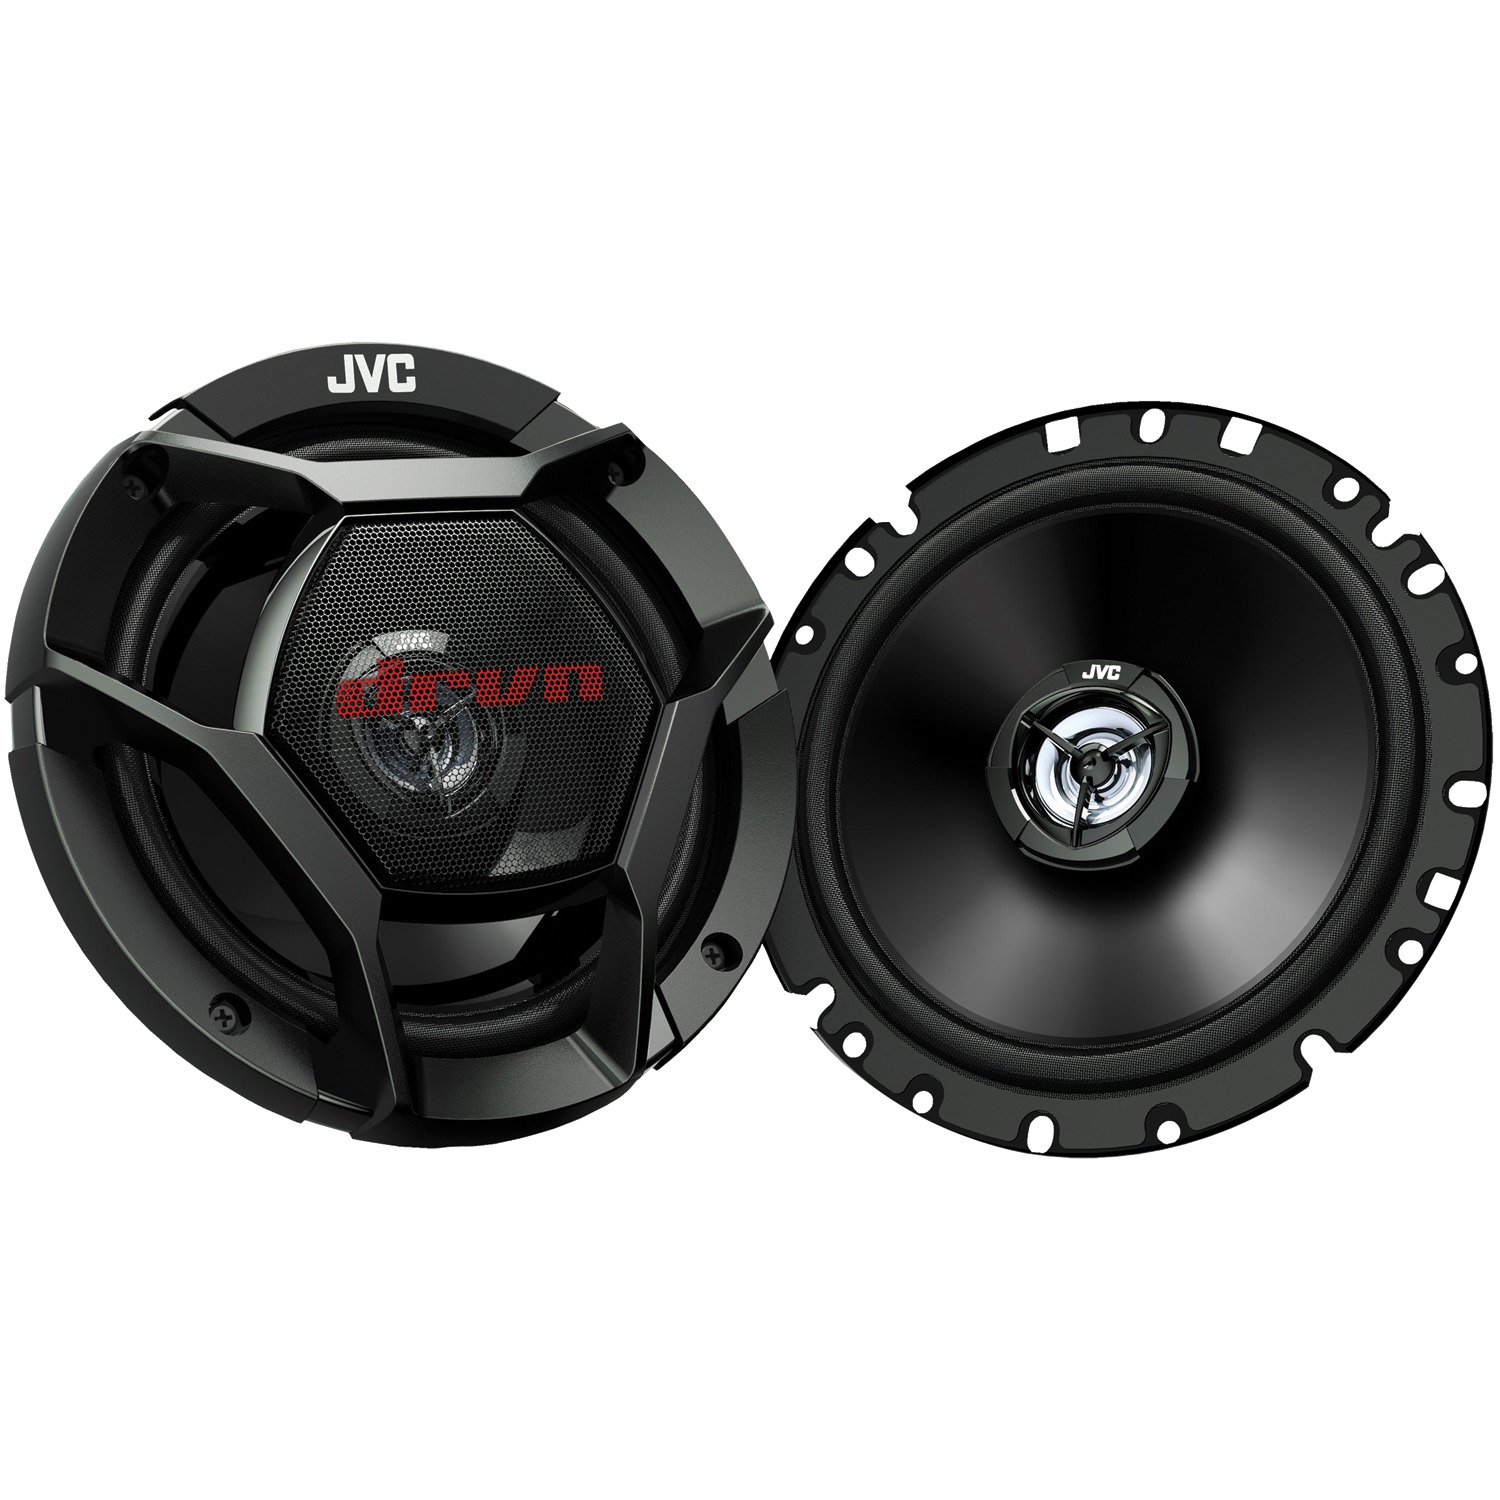 "JVC CS-DR1721 drvn DR Series Shallow-Mount Coaxial Speakers (6.75"", 300 Watts Max, 2 Way)"